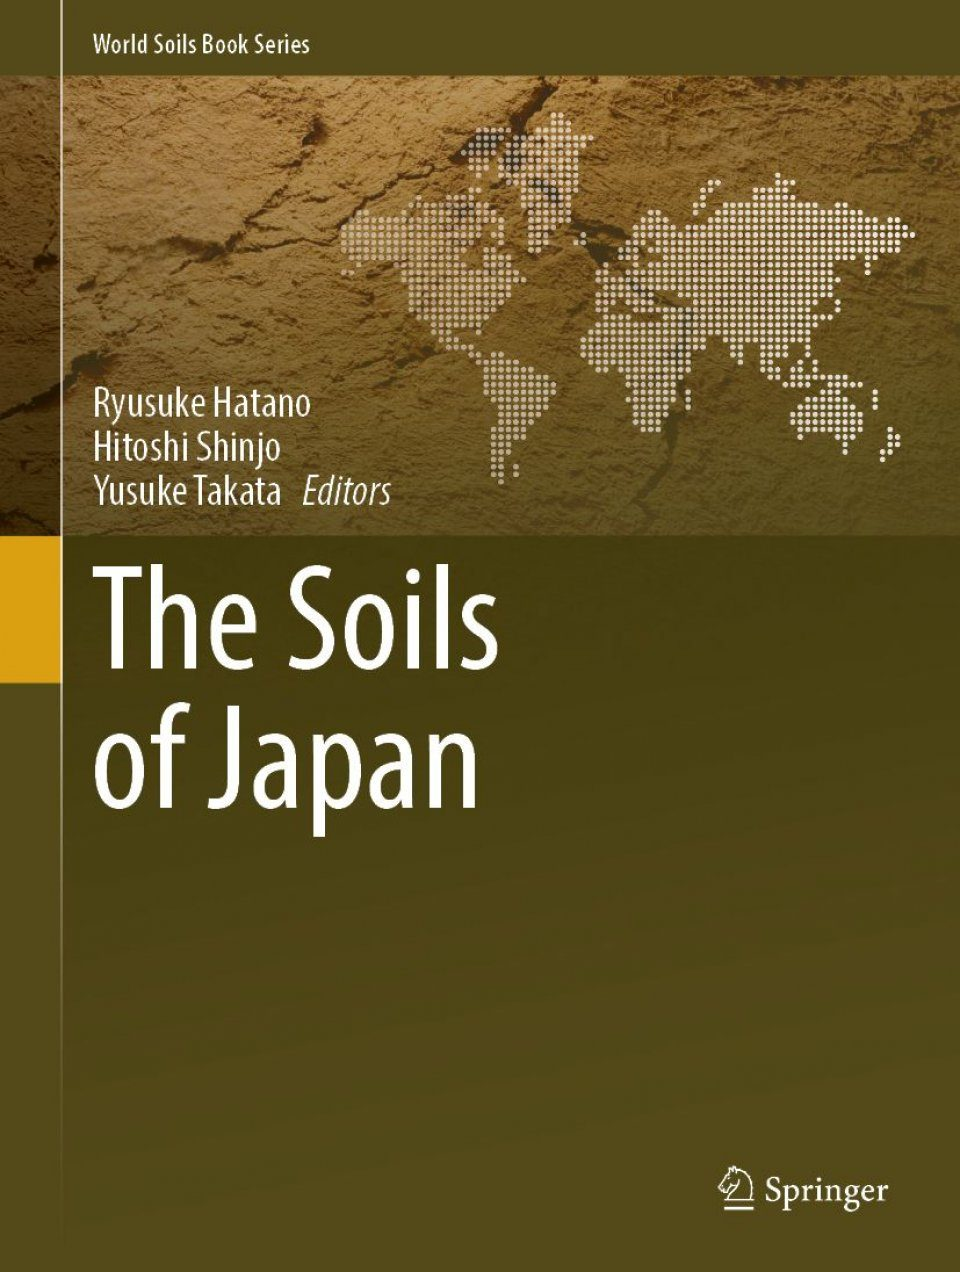 The Soils of Japan